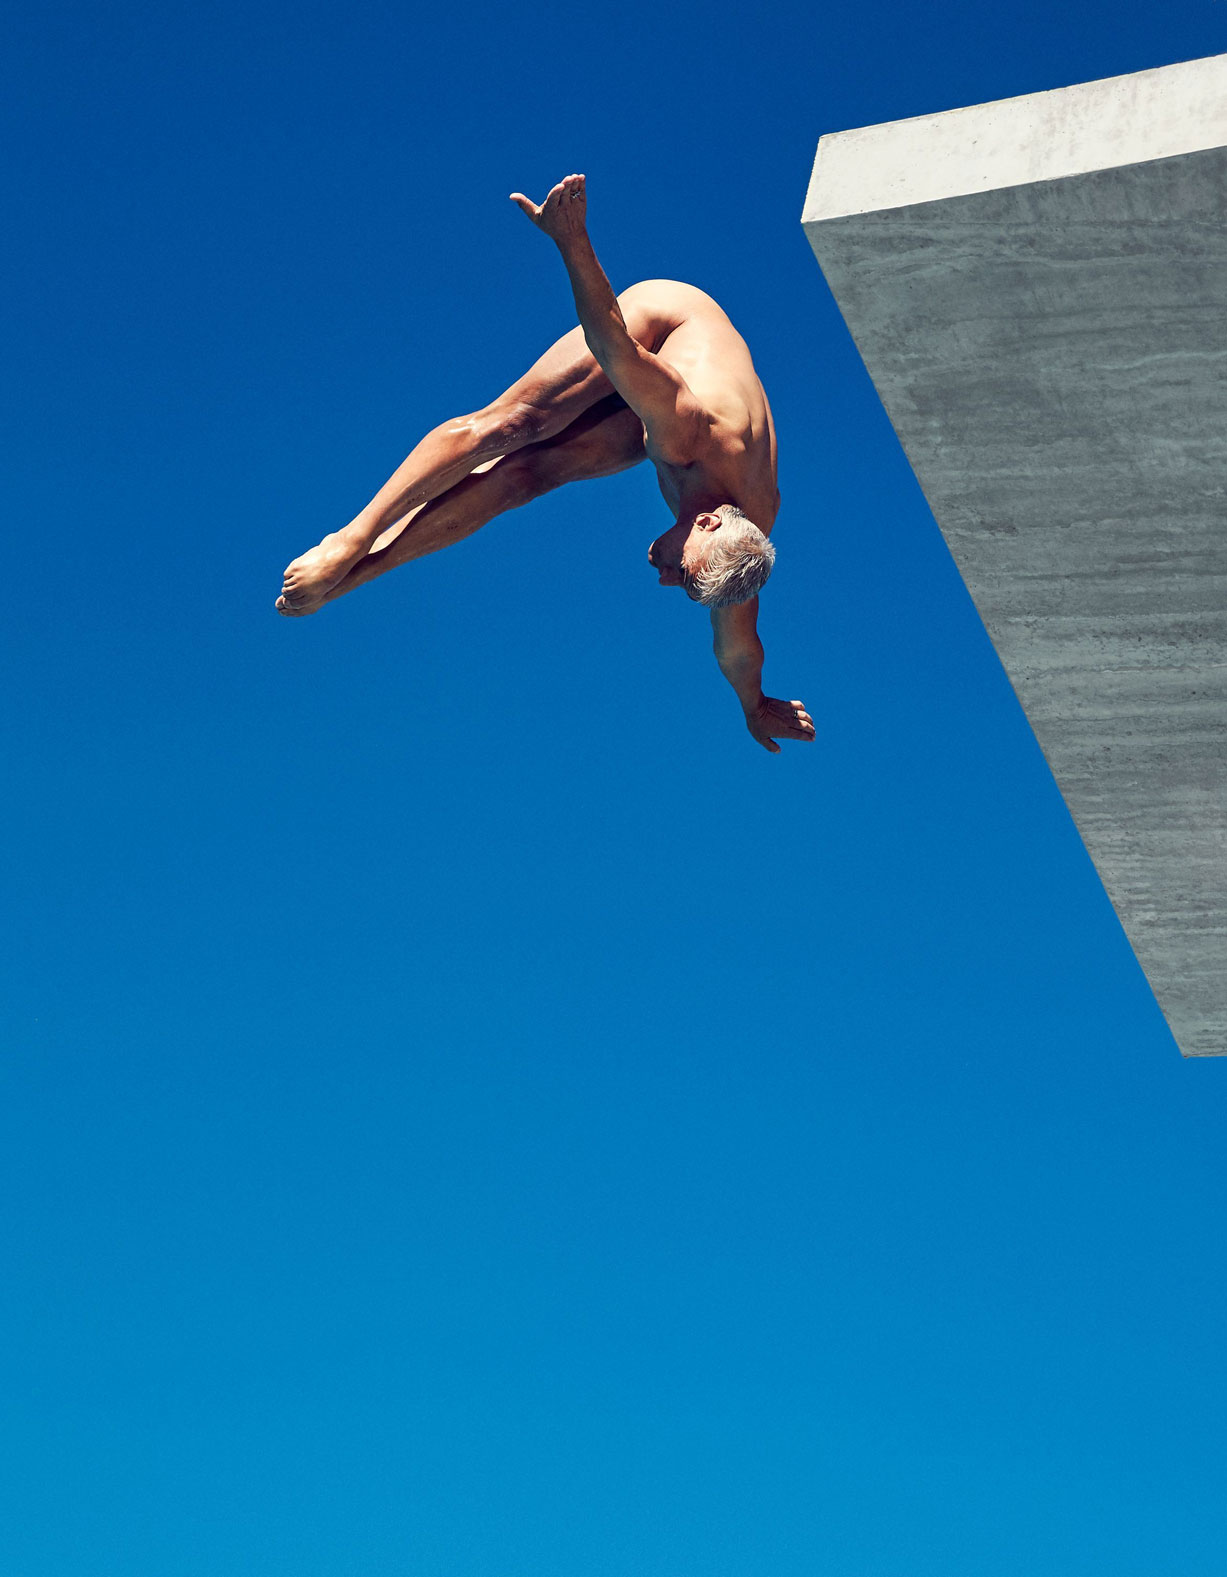 ESPN Magazine The Body Issue 2016 - Greg Louganis / Грег Луганис - Культ тела журнала ESPN